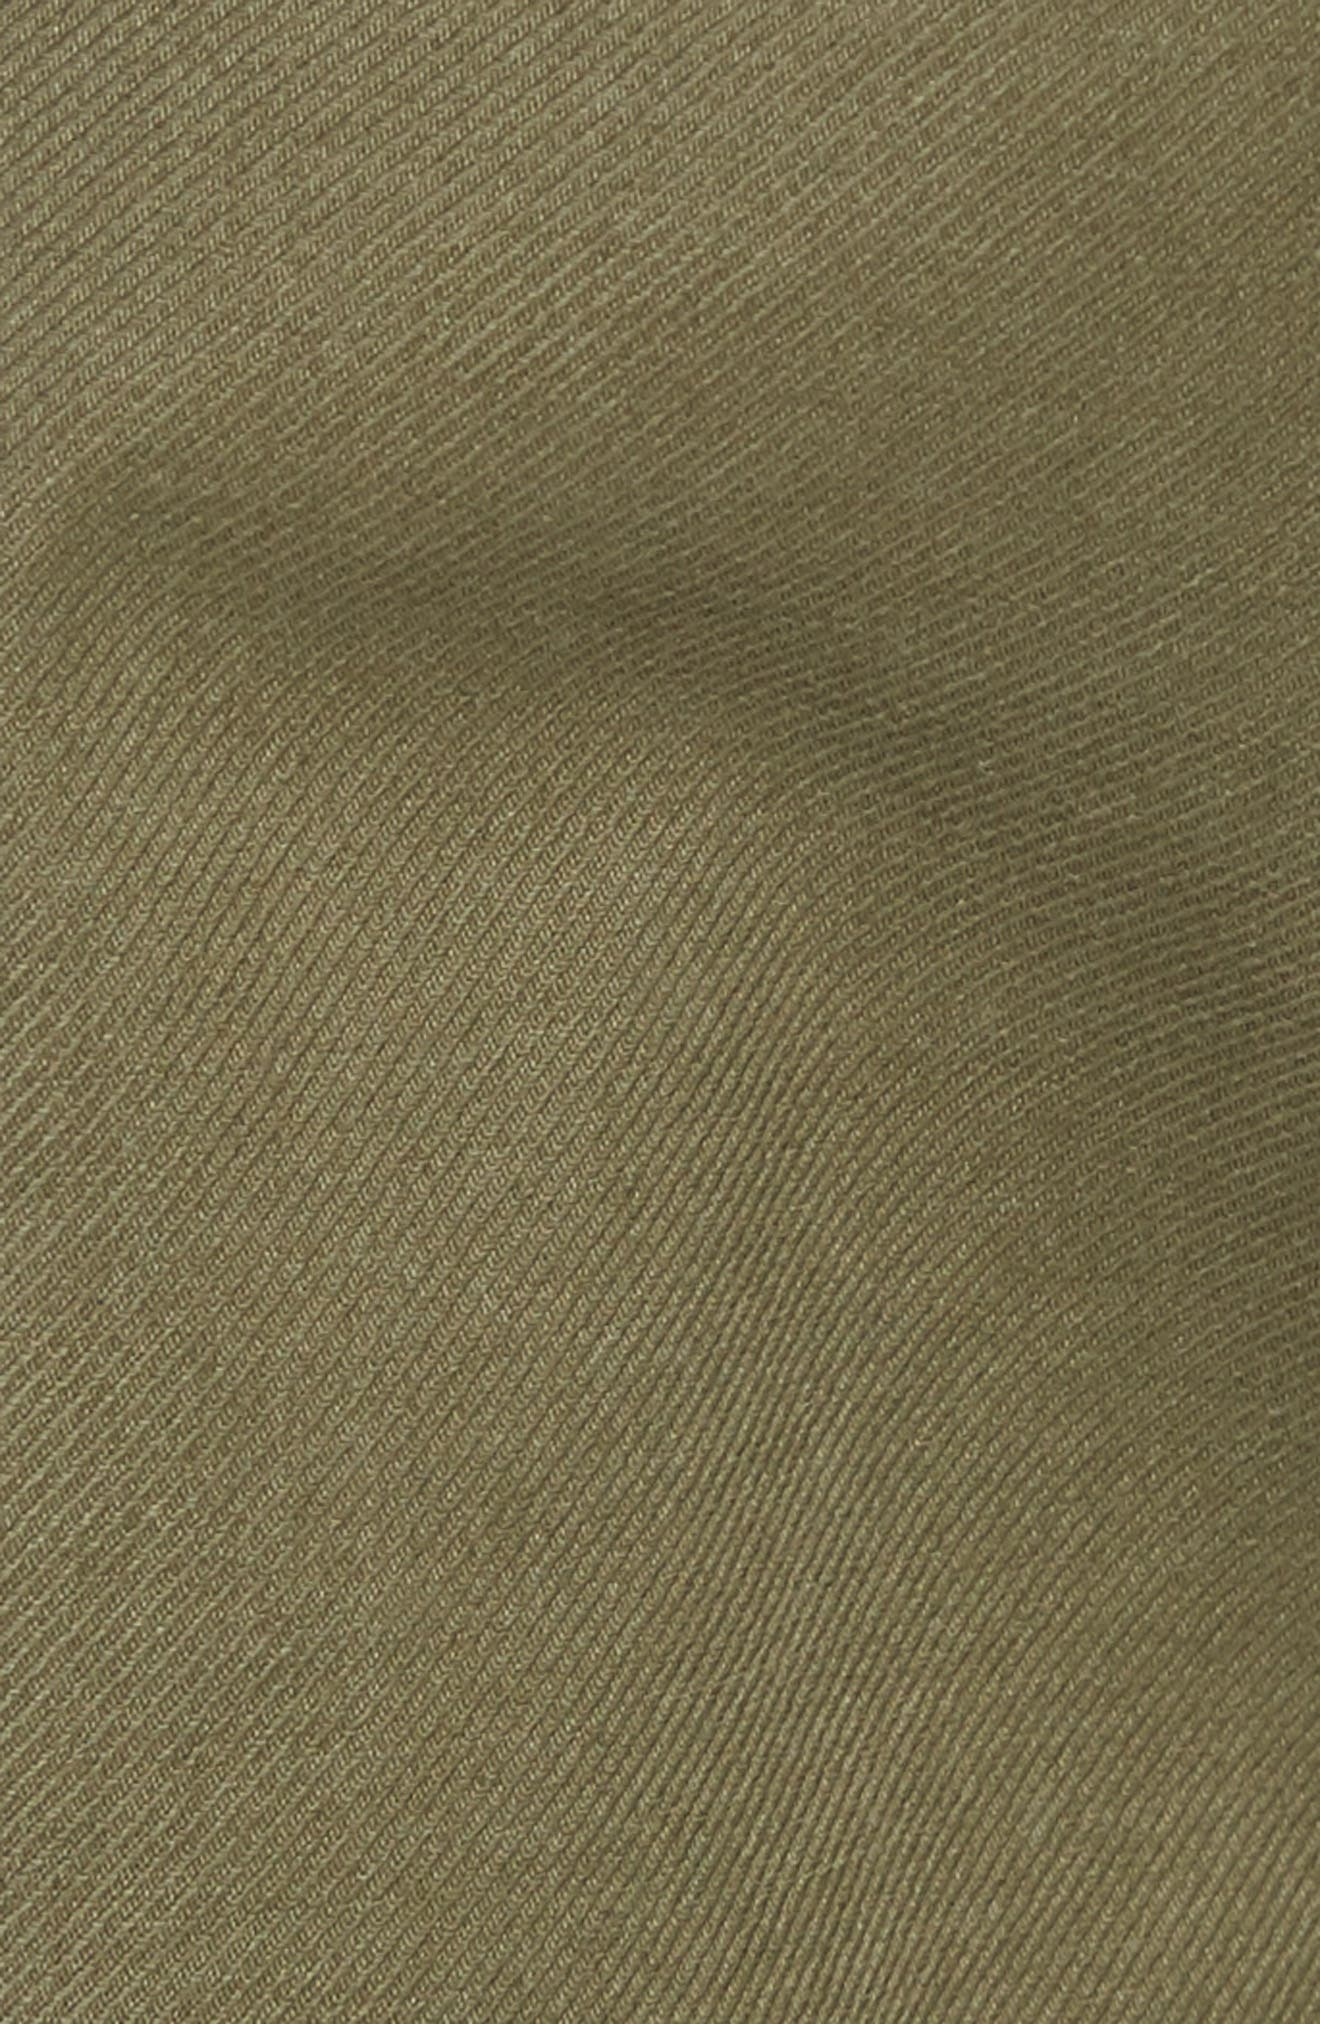 Slim Fit Cargo Shorts,                             Alternate thumbnail 5, color,                             Army Green 2